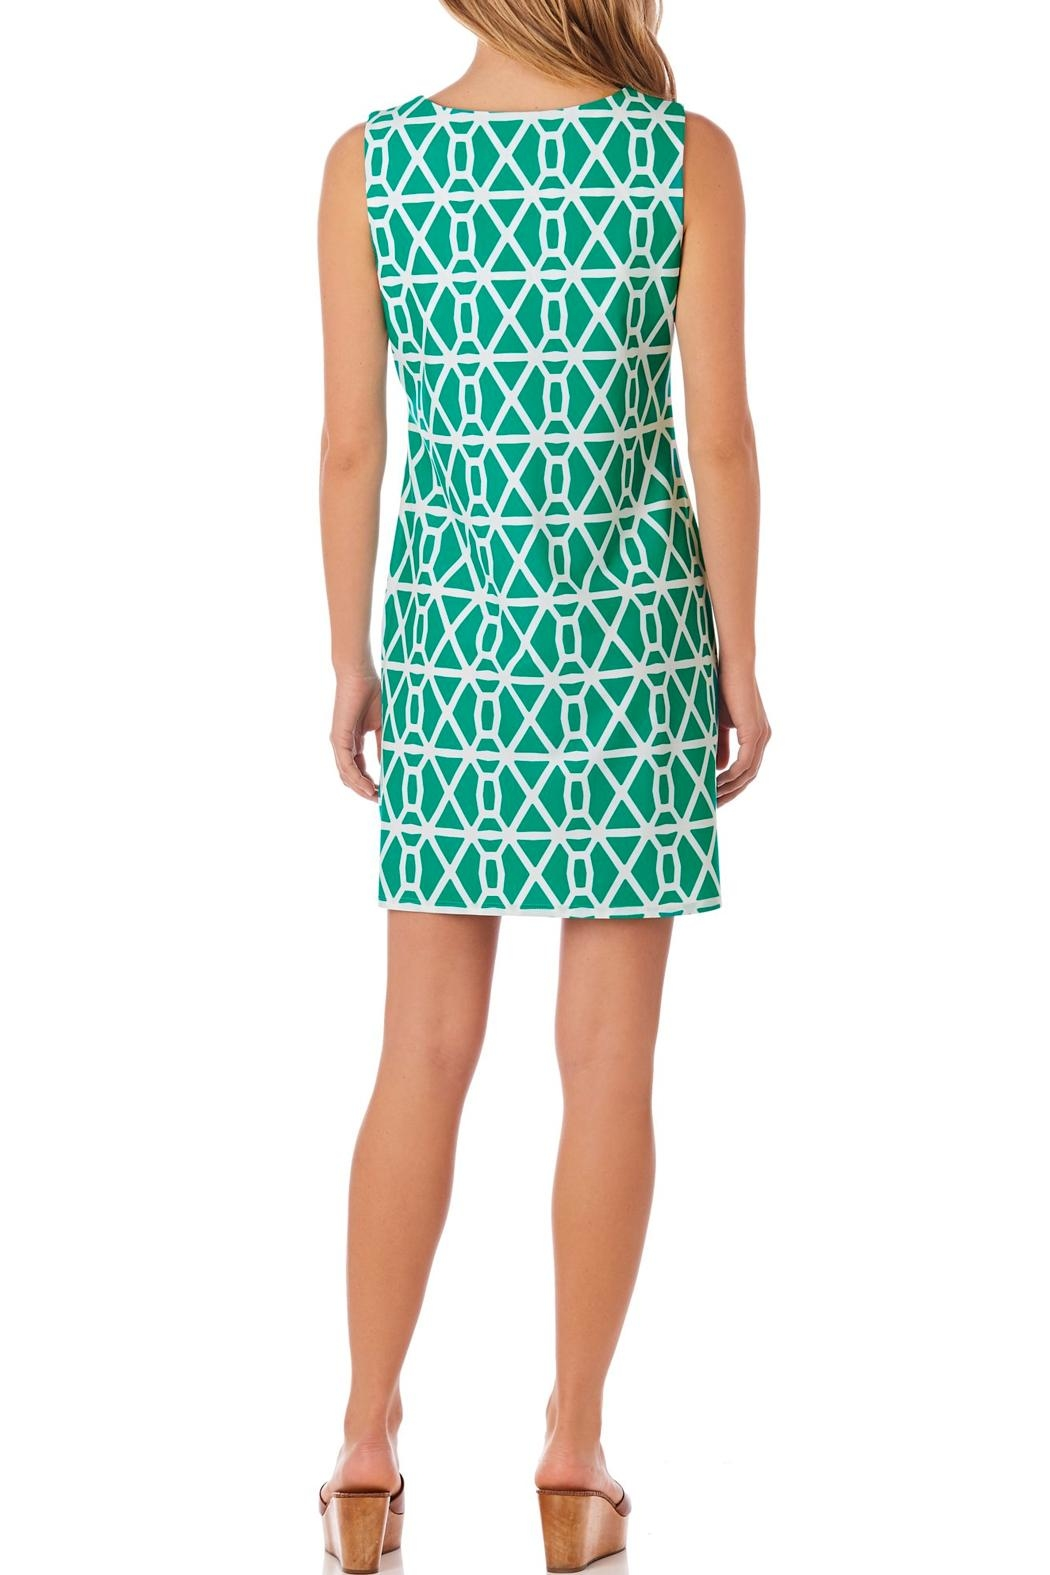 Jude Connally Carissa Shift Dress - Front Full Image